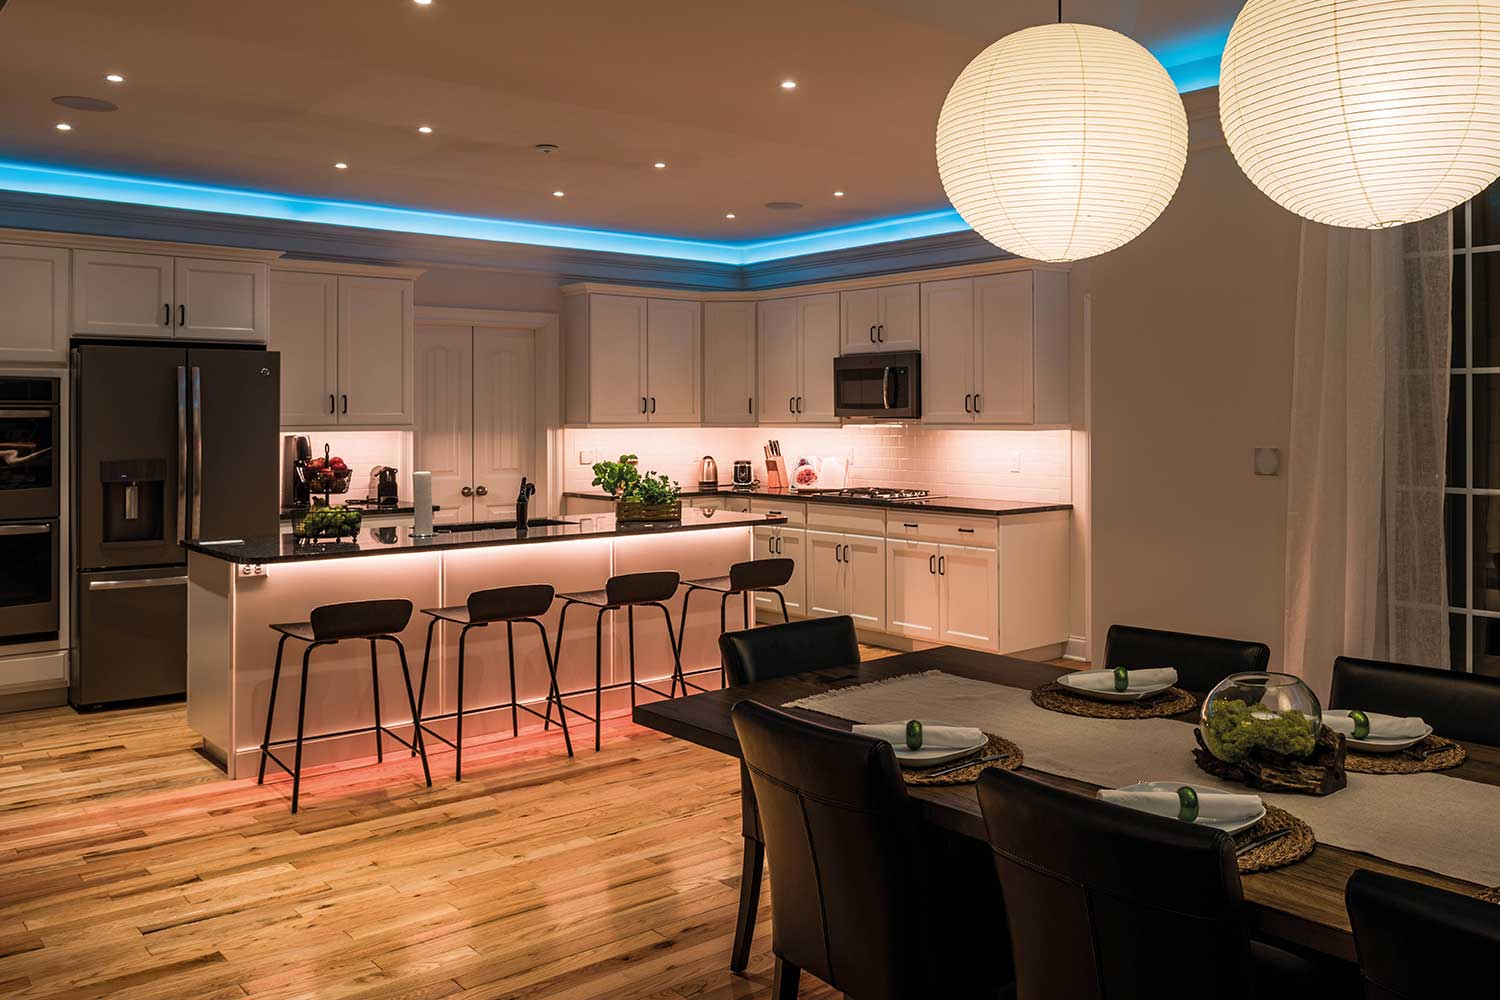 Modern kitchen with bright white lighting and colorful LED Strip accent lighting.